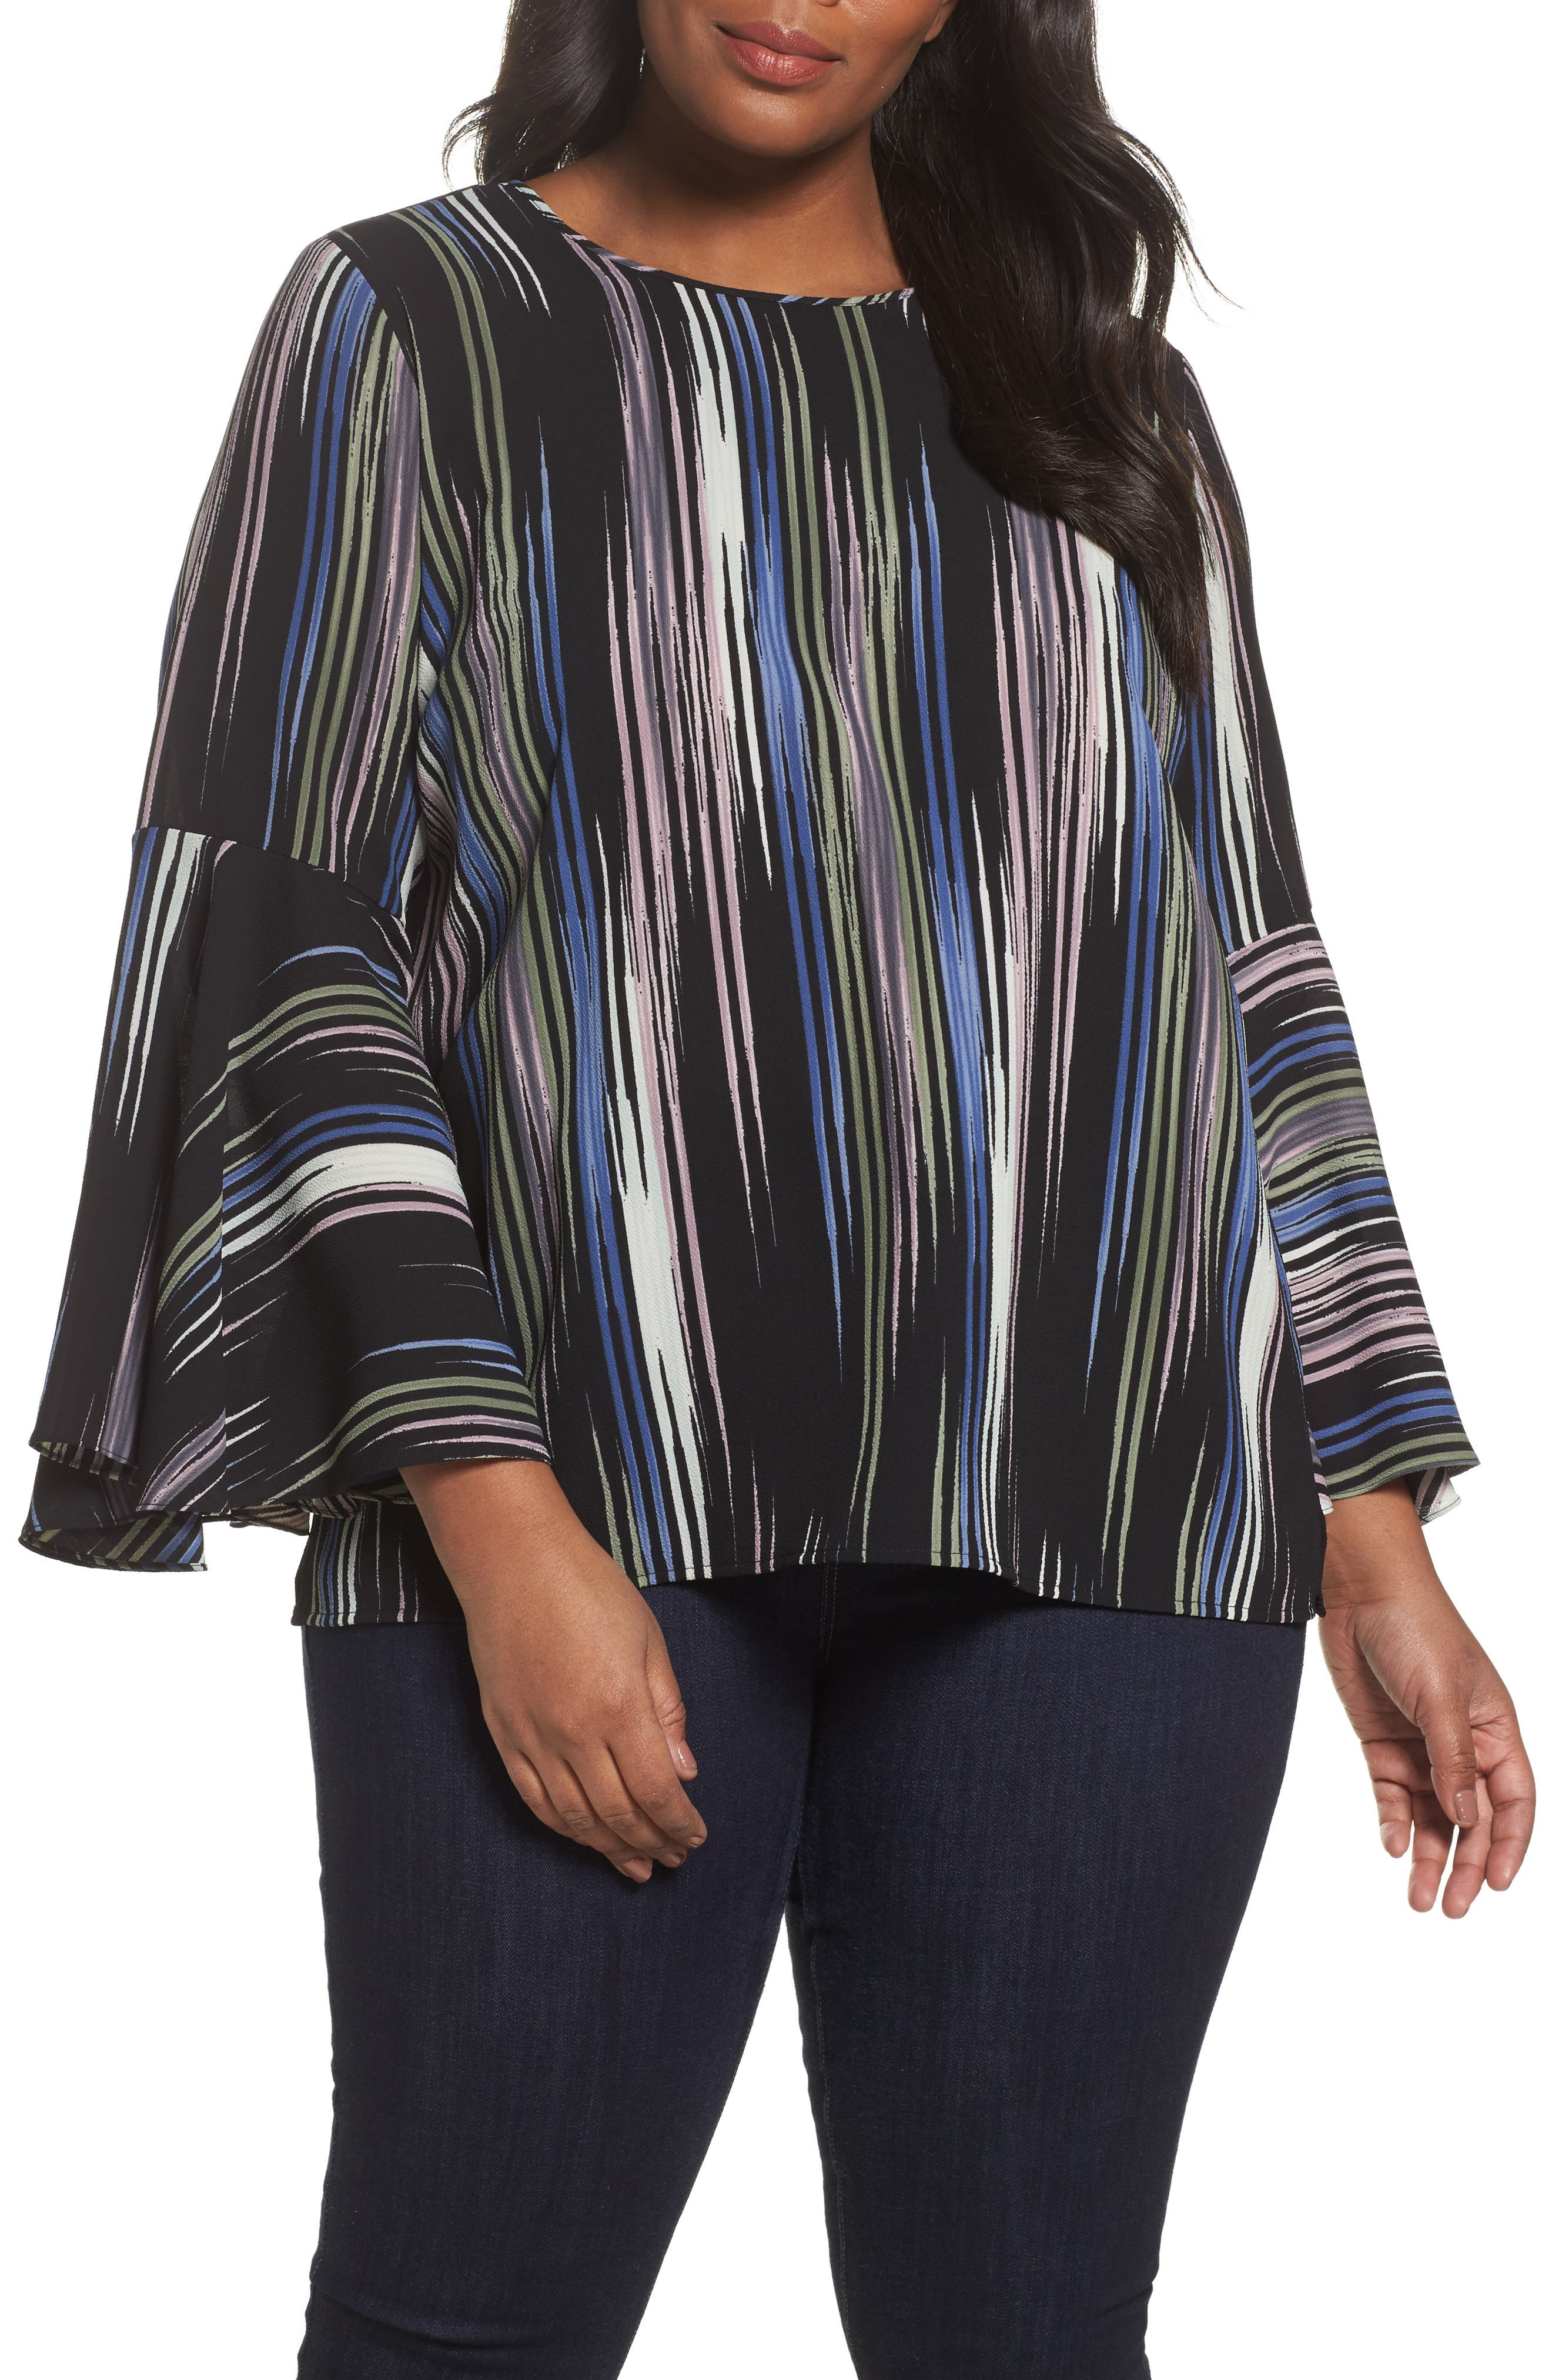 Vince Camuto Bell Sleeve Colorful Peak Blouse (Plus Size)